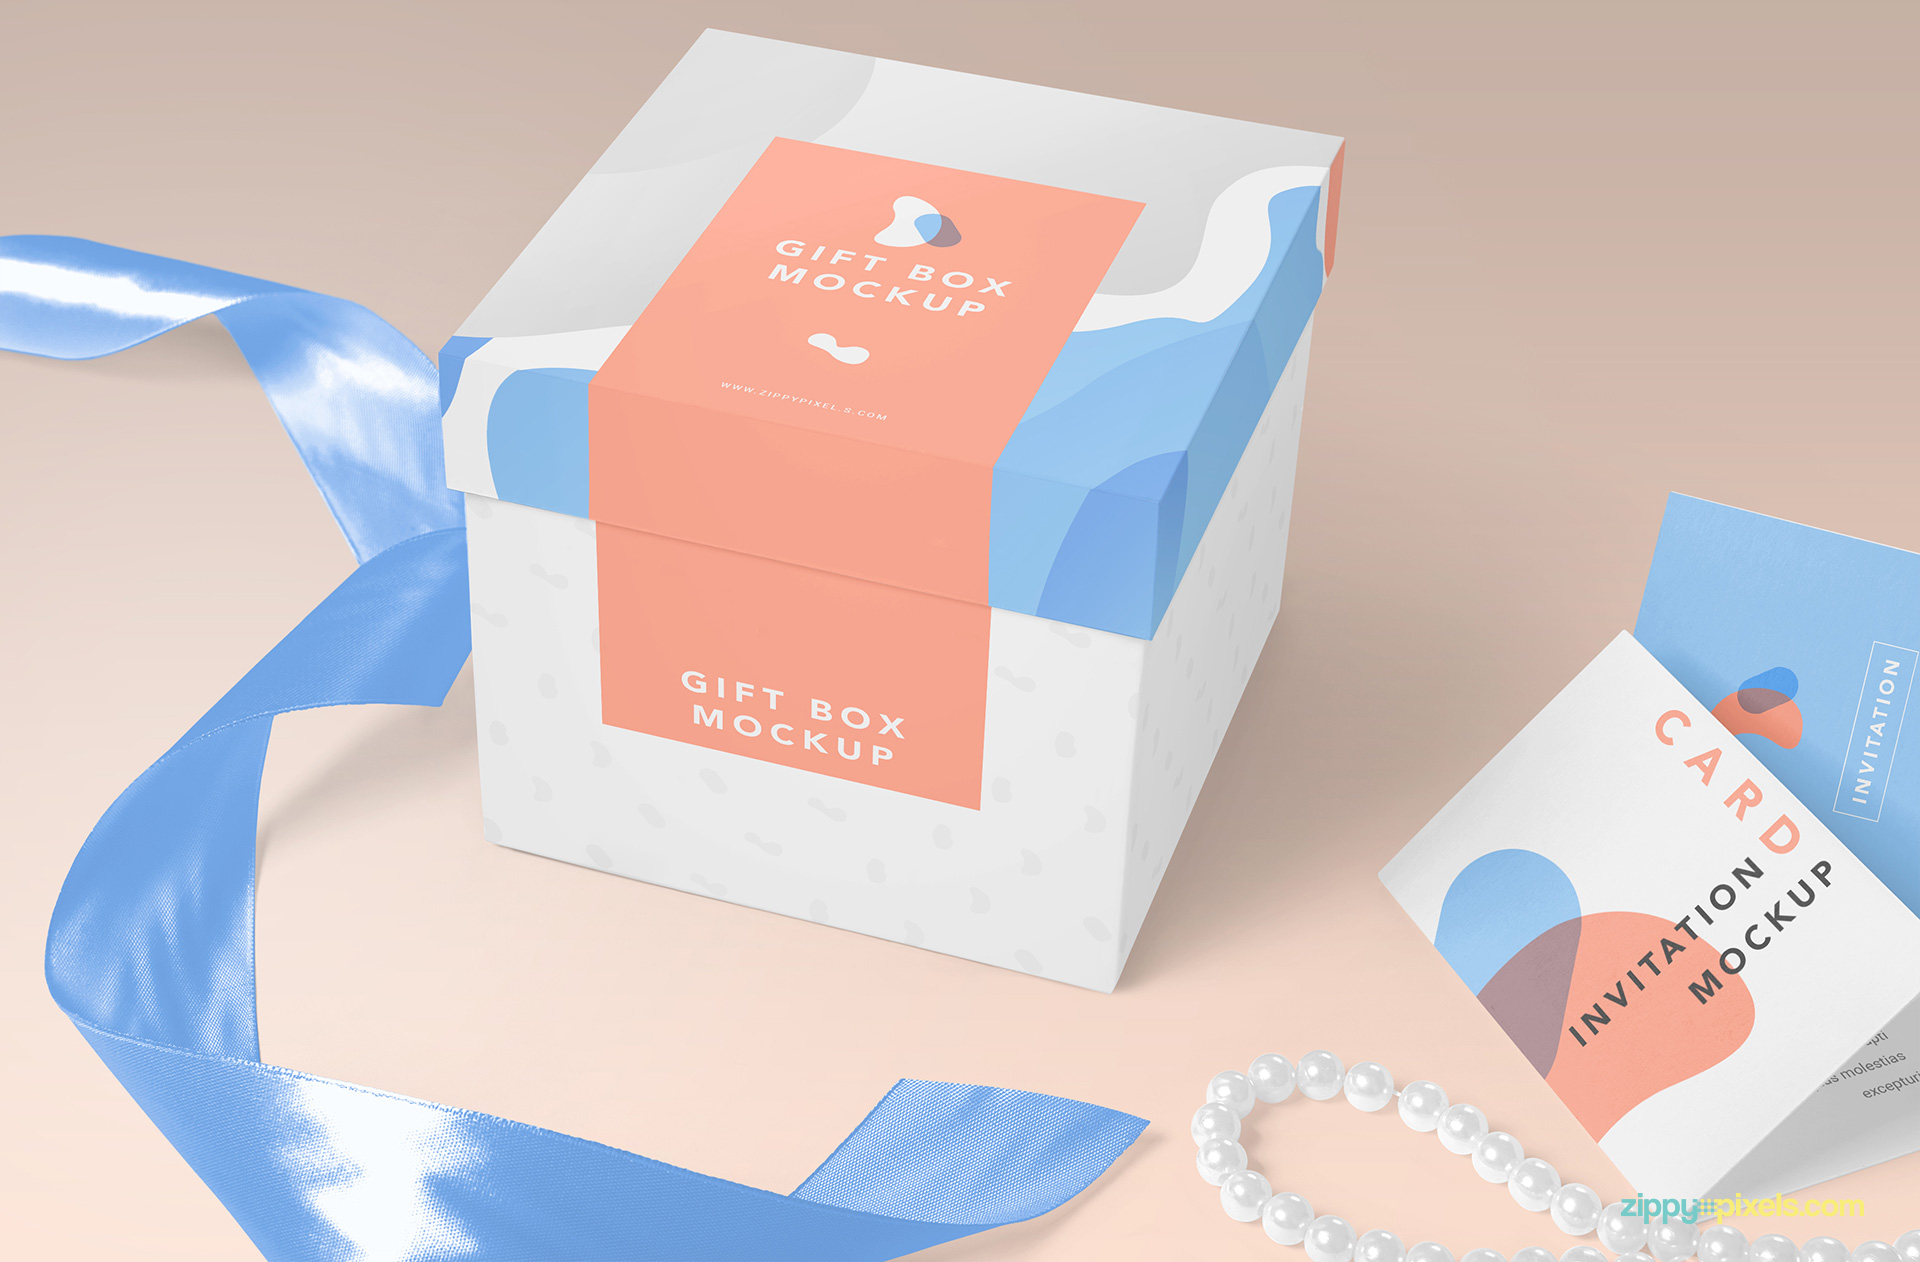 Easy to edit gift box mockup scene.